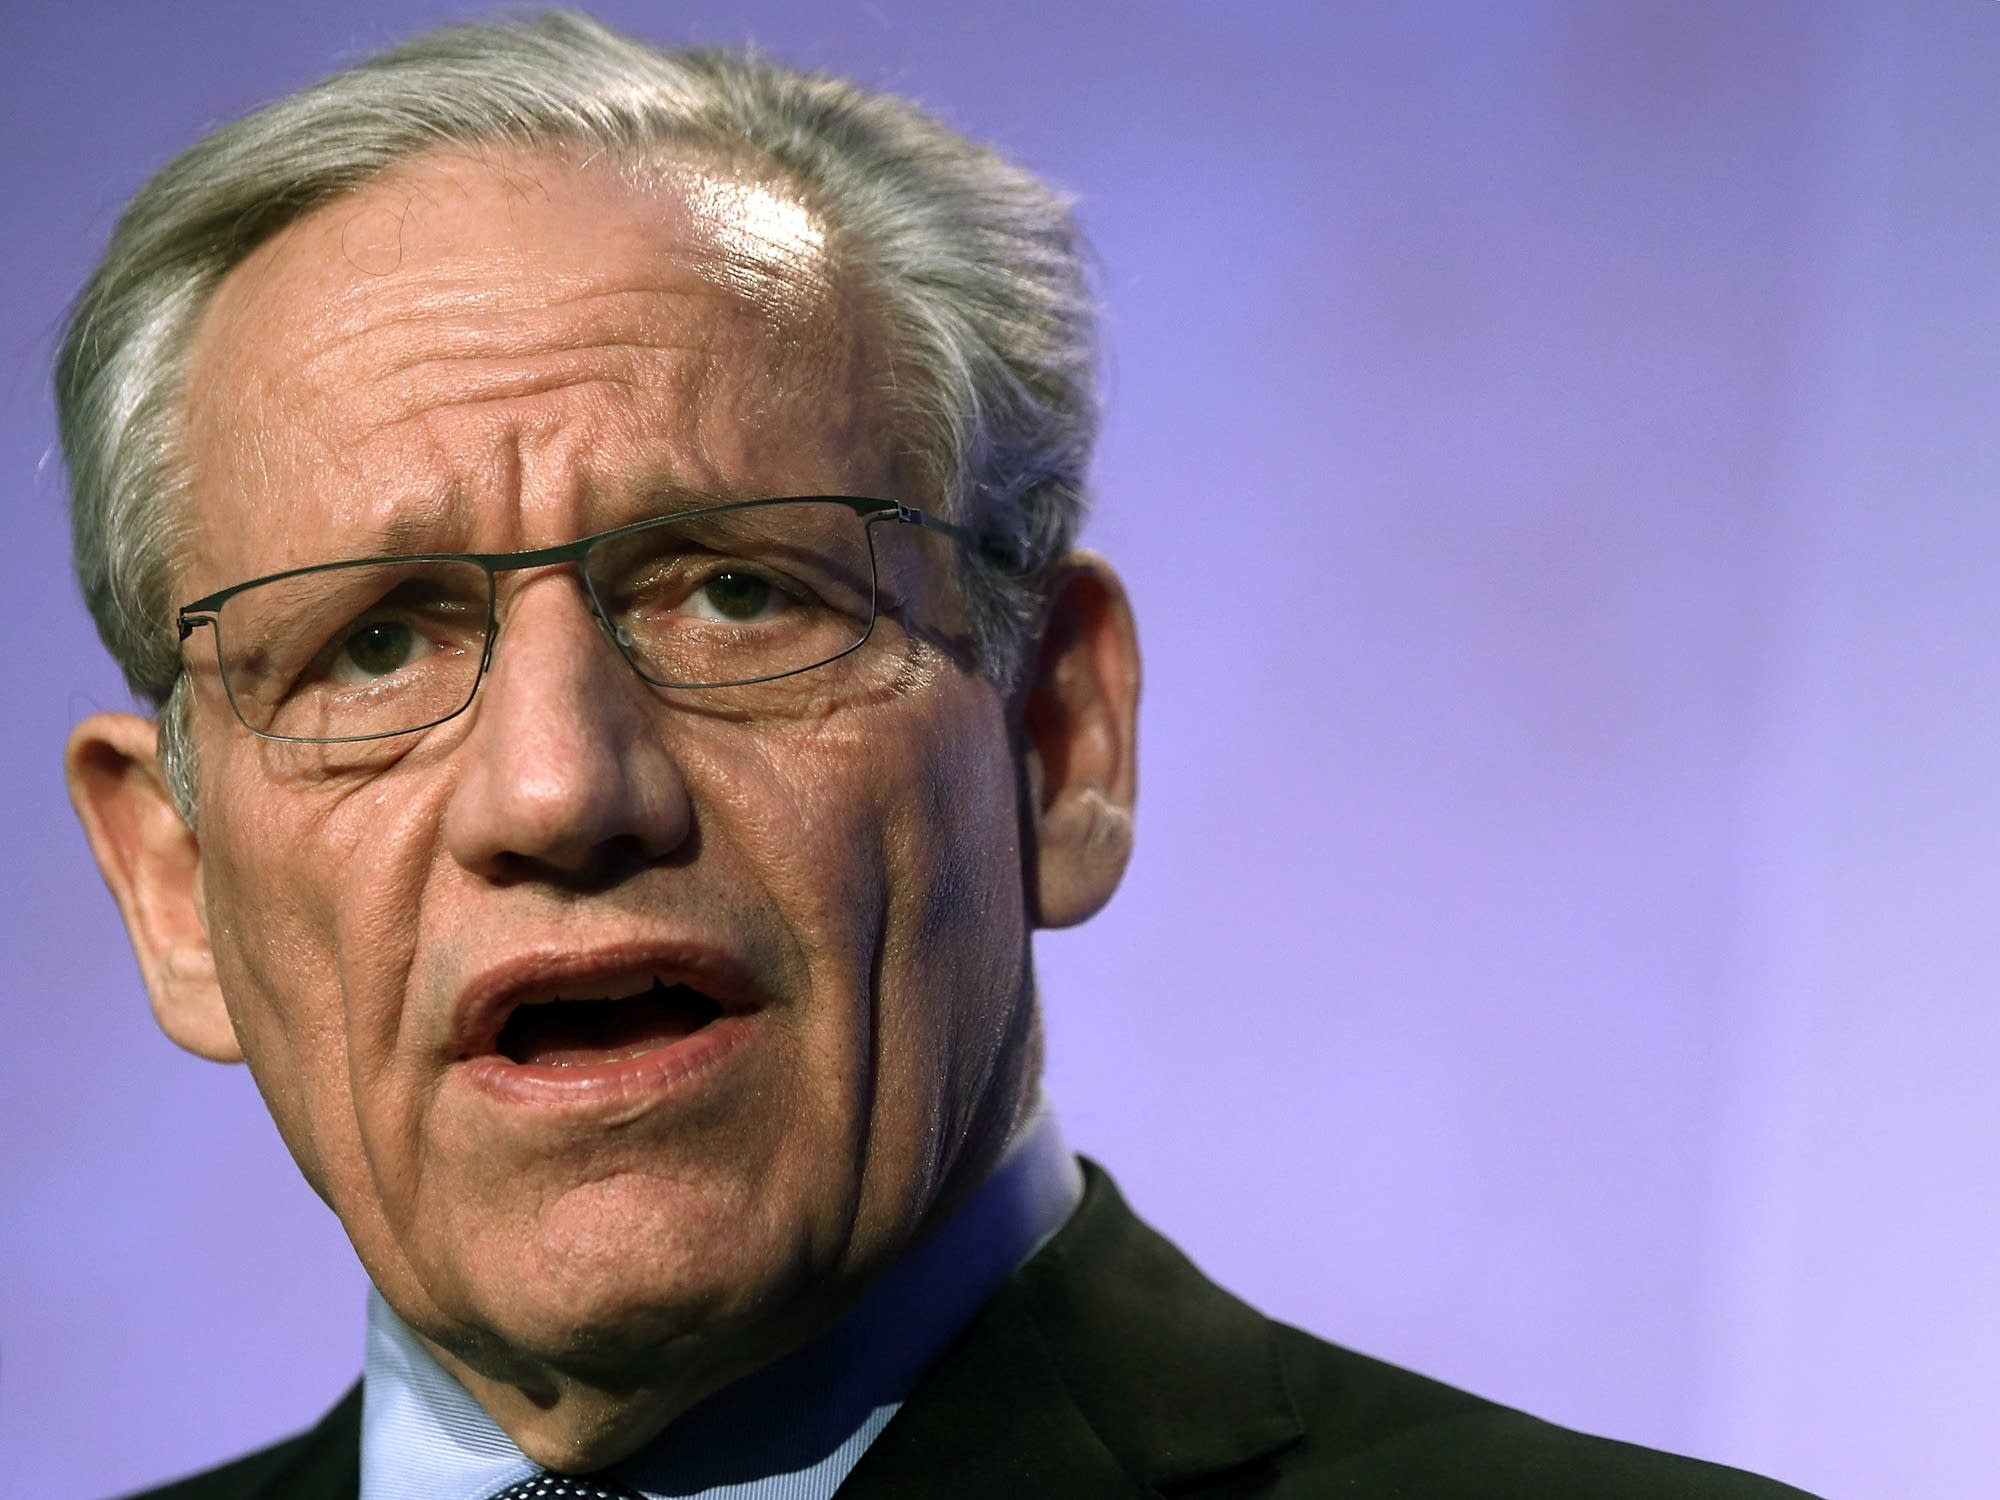 Bob Woodward speaks at the National Association Of Counties Conference.